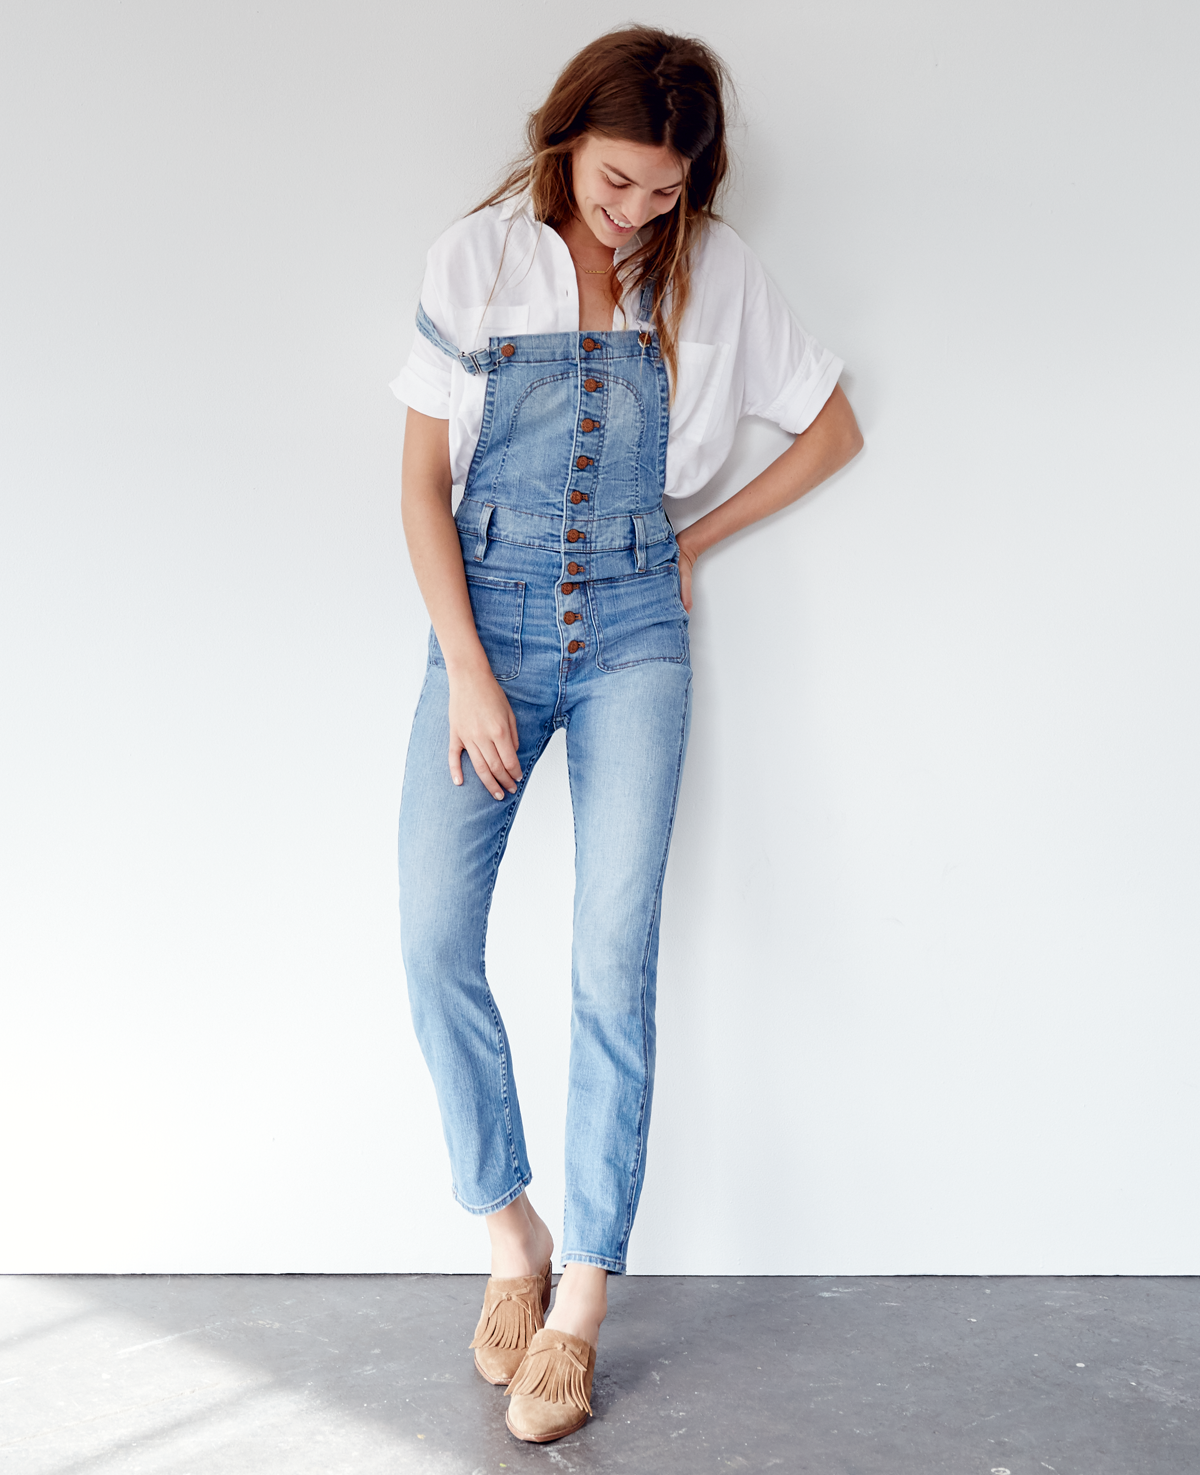 19689ee4db85 madewell bayfront cop overalls  denimmadewell